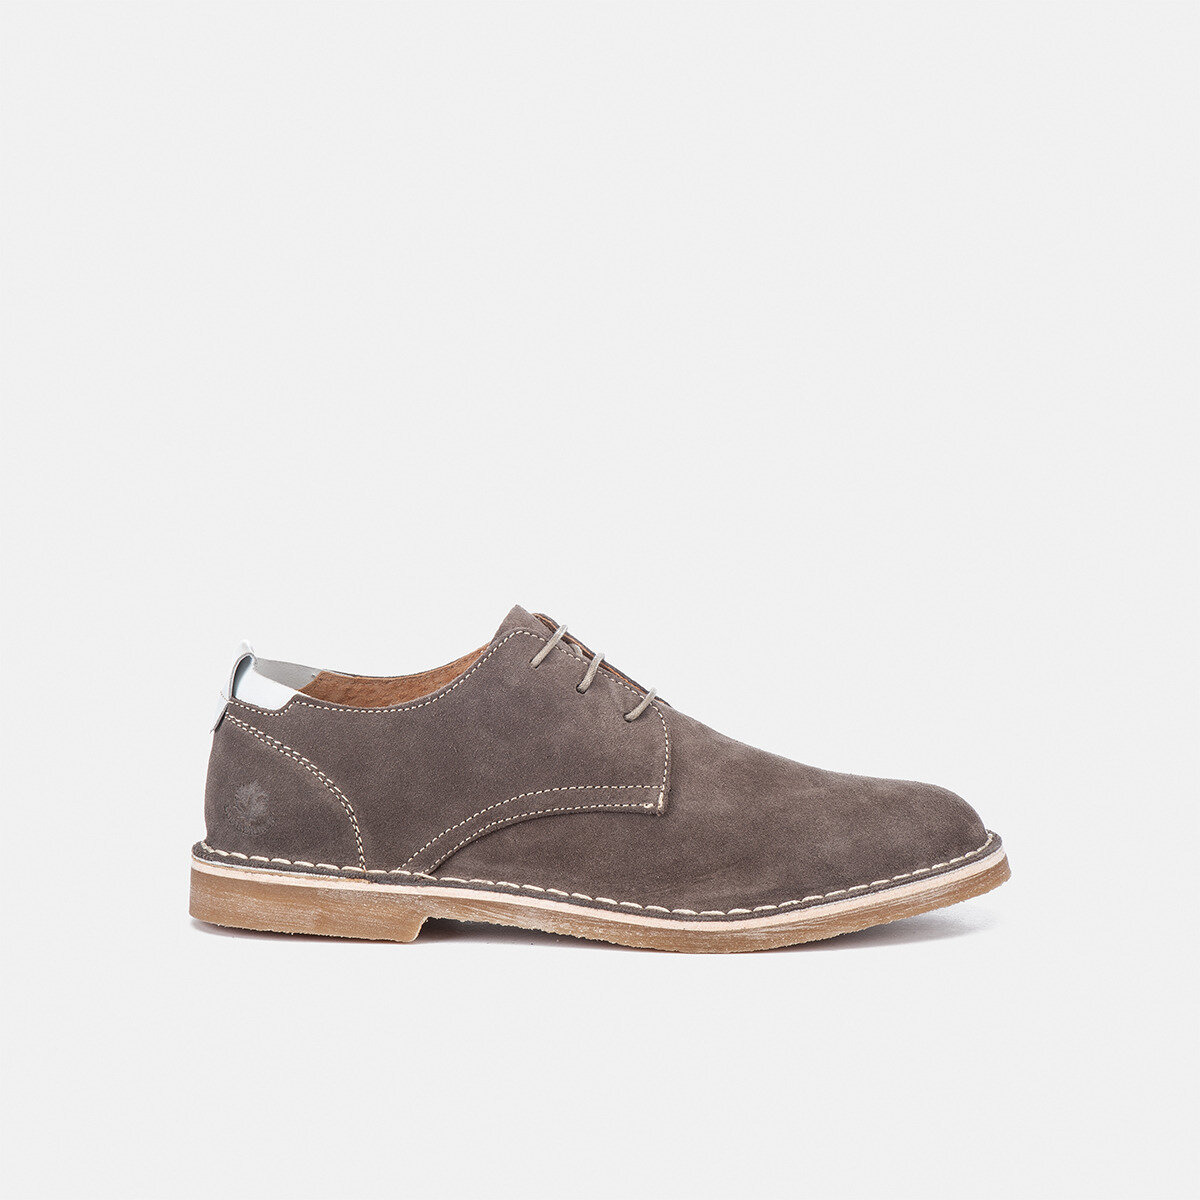 STILLO MOREL TAUPE Man Casual shoes